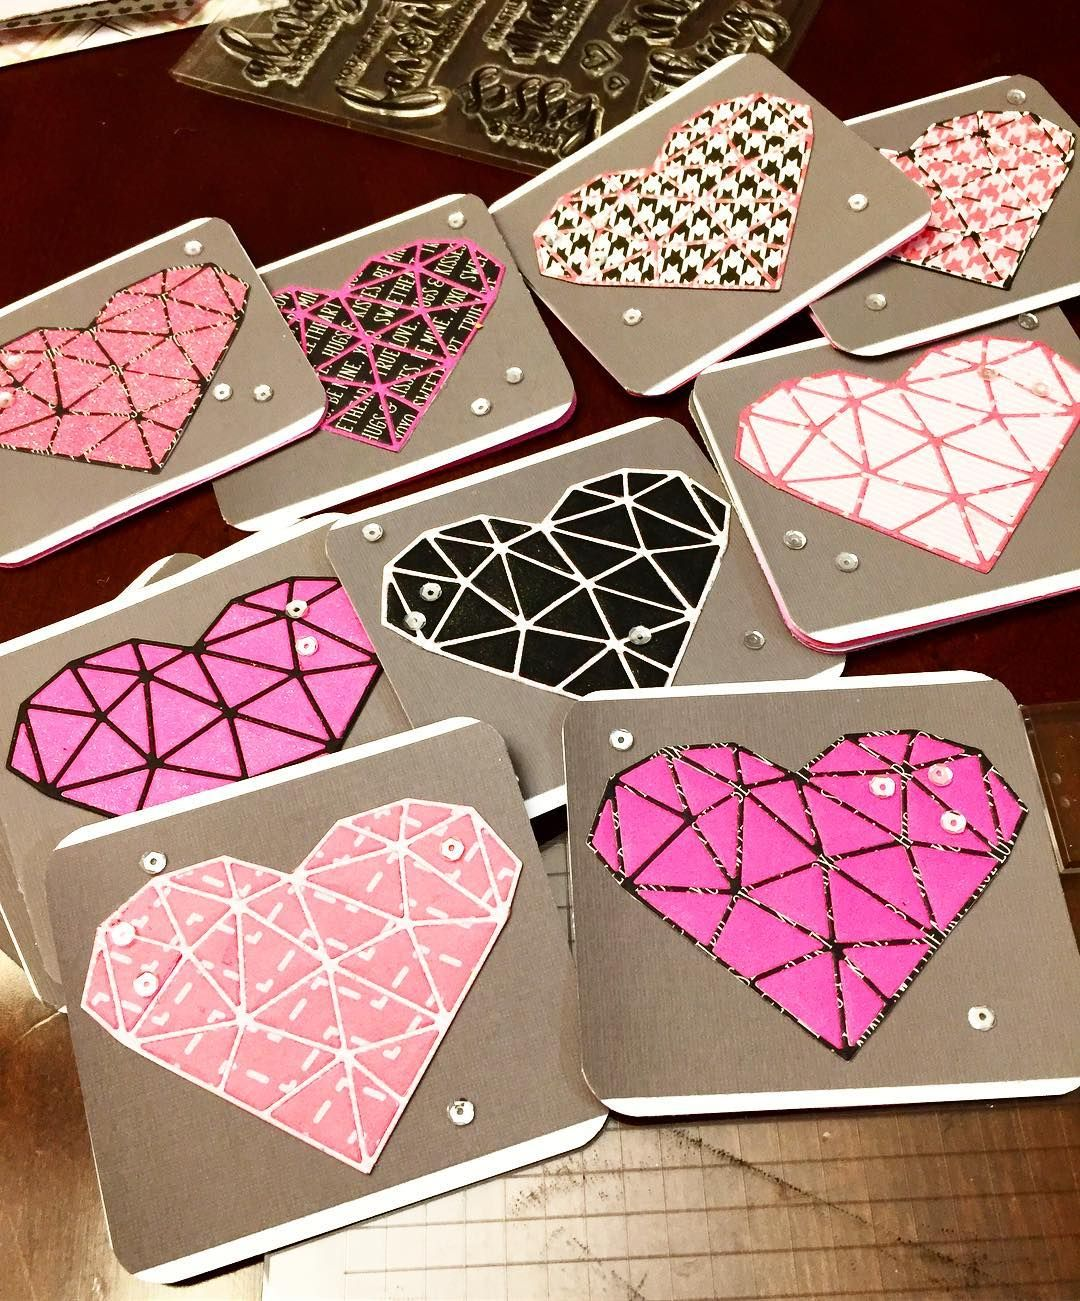 My weekend consists of making 23 handmade Valentine's Day Cards for a special 6 year old. We are die cutting different patterned papers and inlaying them back together! #craftersofinsta #craftersofig #craftersofinstagram #crafters #craft #crafty #crafts #diecuts #diecutcrazy #diecutting #patternedpaper #prettypinkposh #sequins